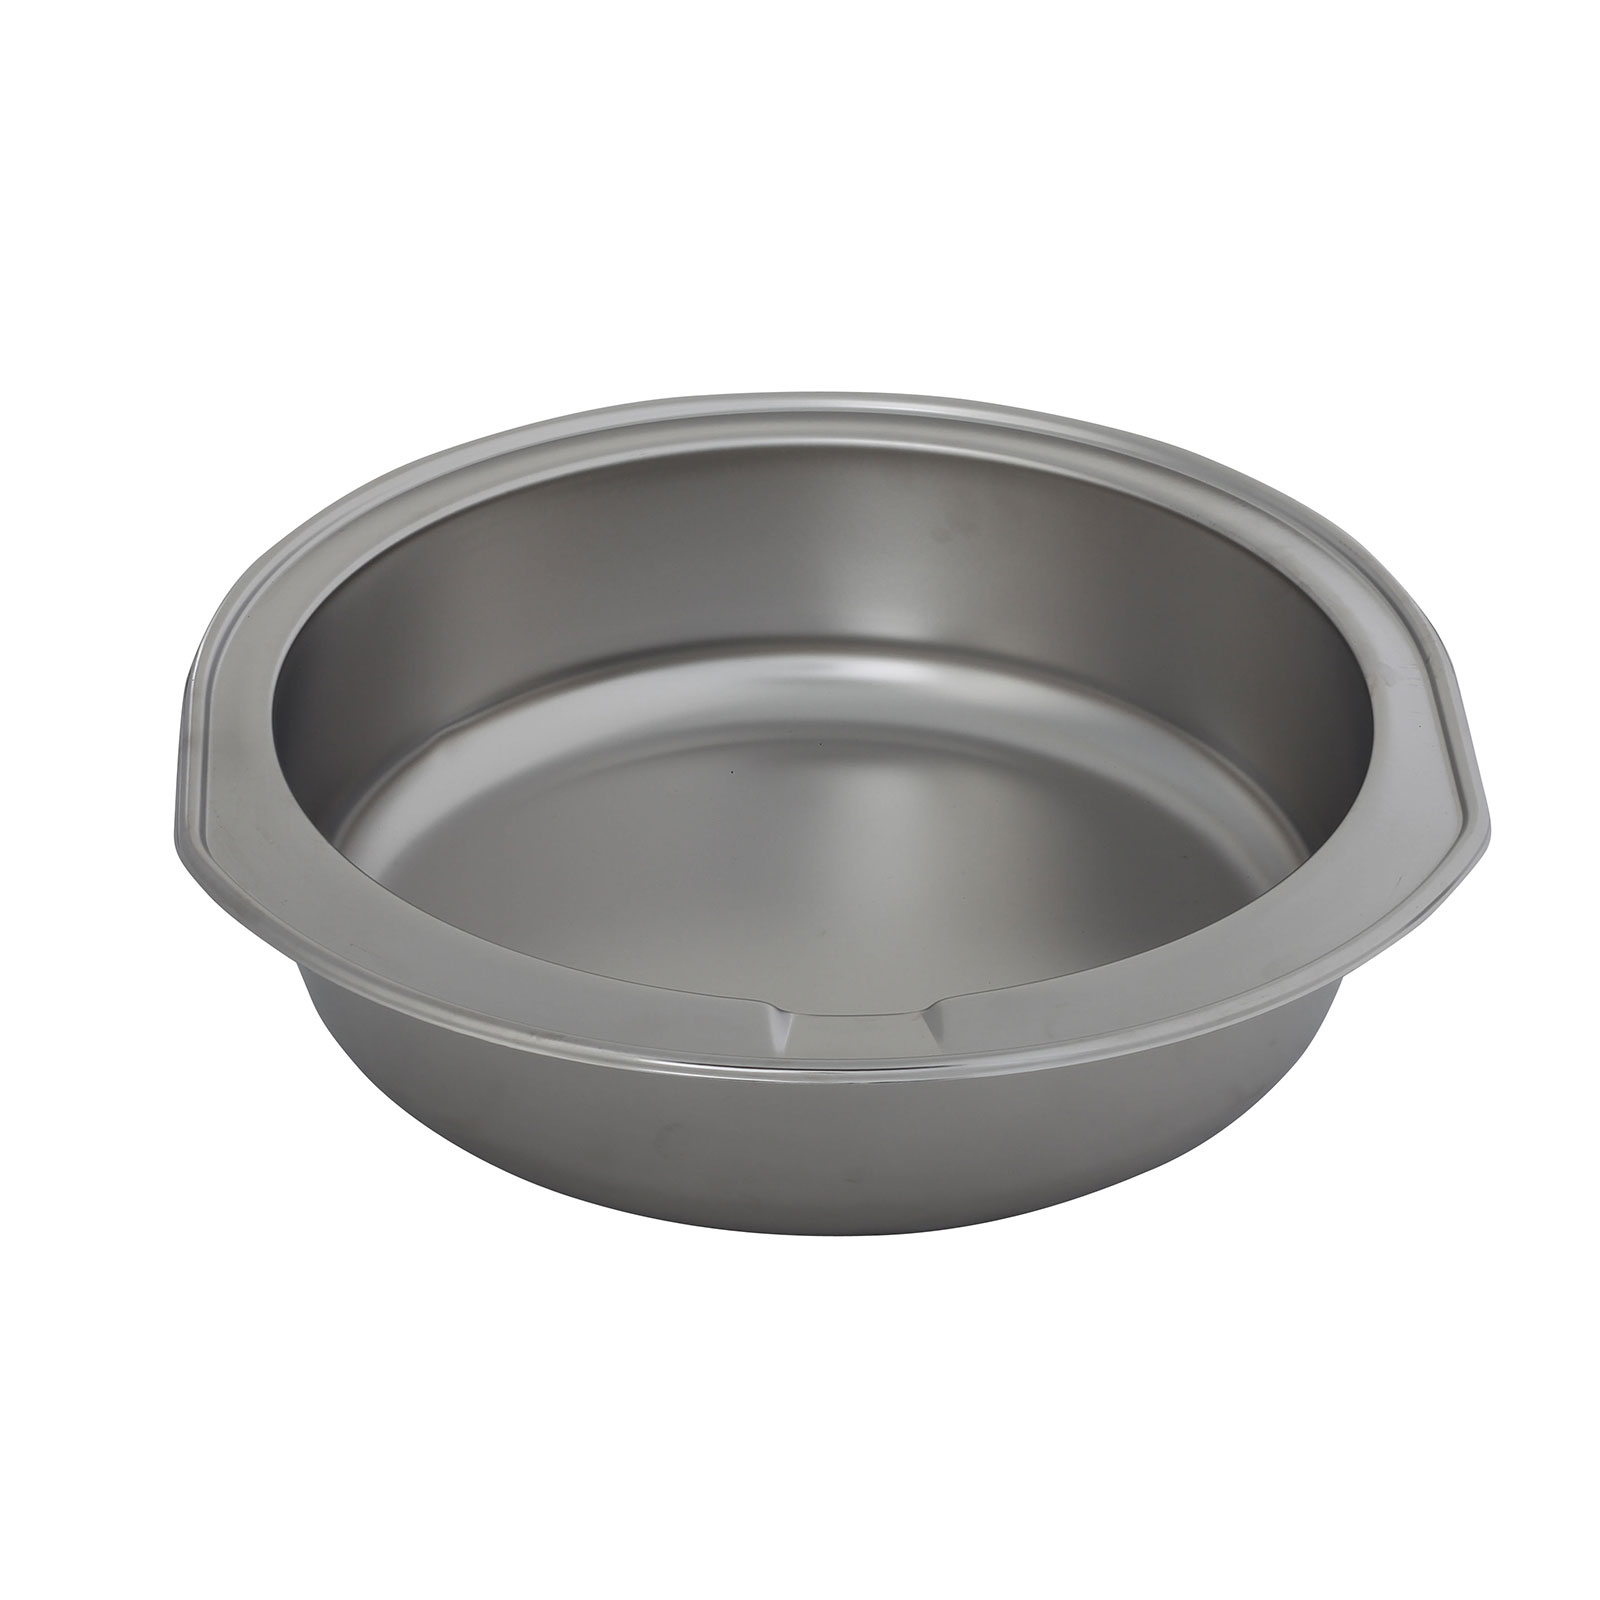 Winco 103-WP chafing dish pan